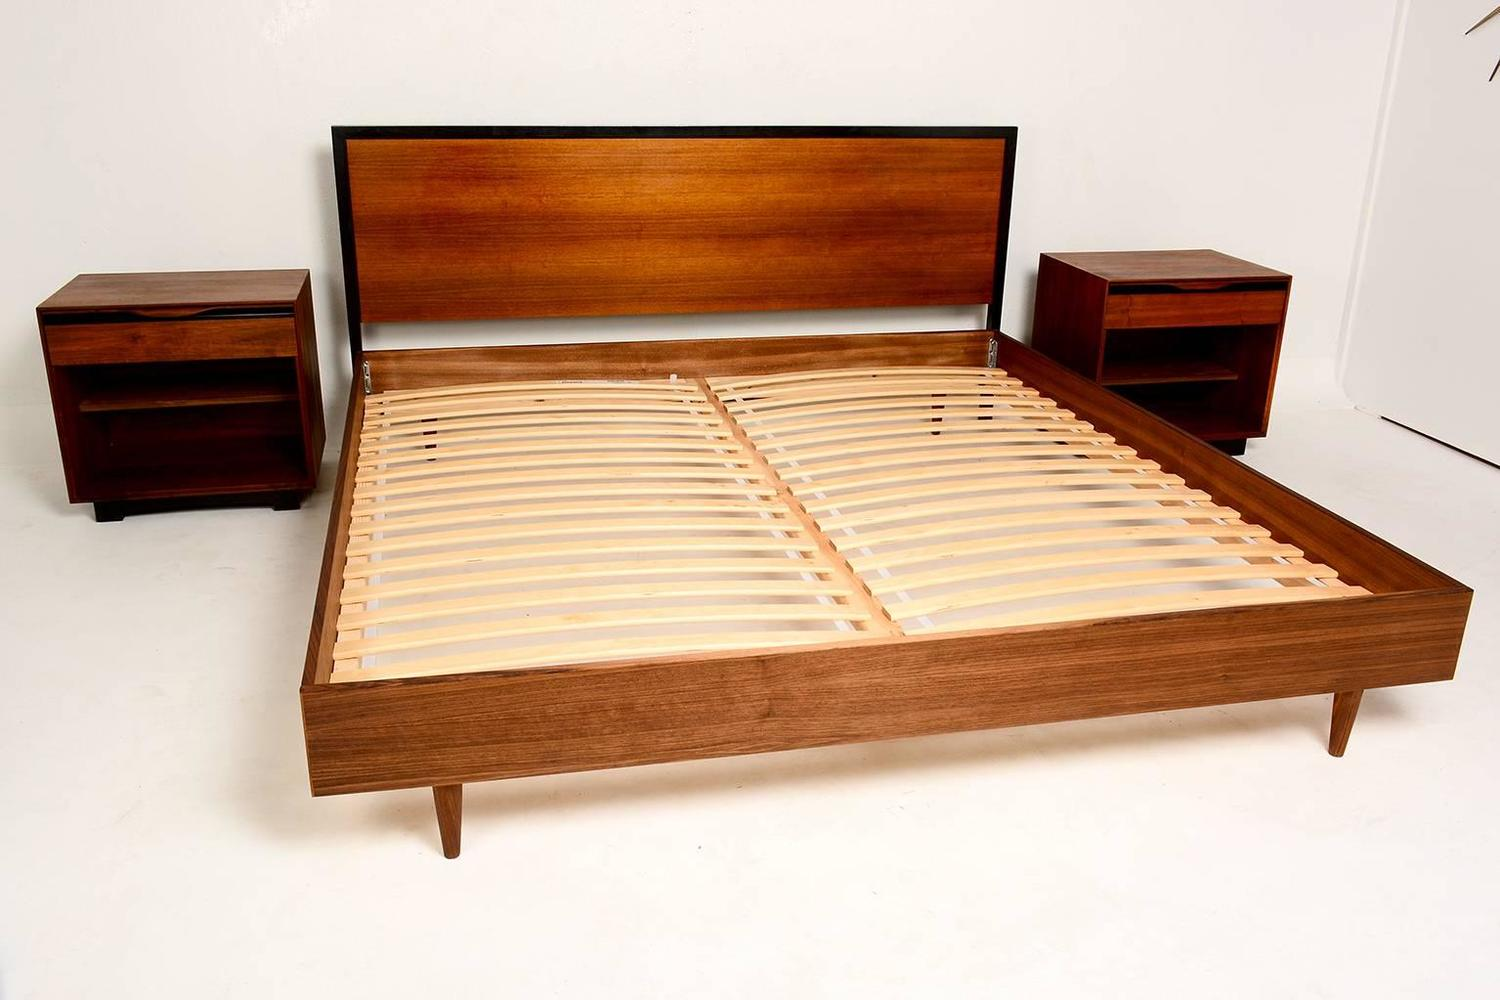 Mid century modern walnut king size platform bed at 1stdibs - Kingsize platform beds ...